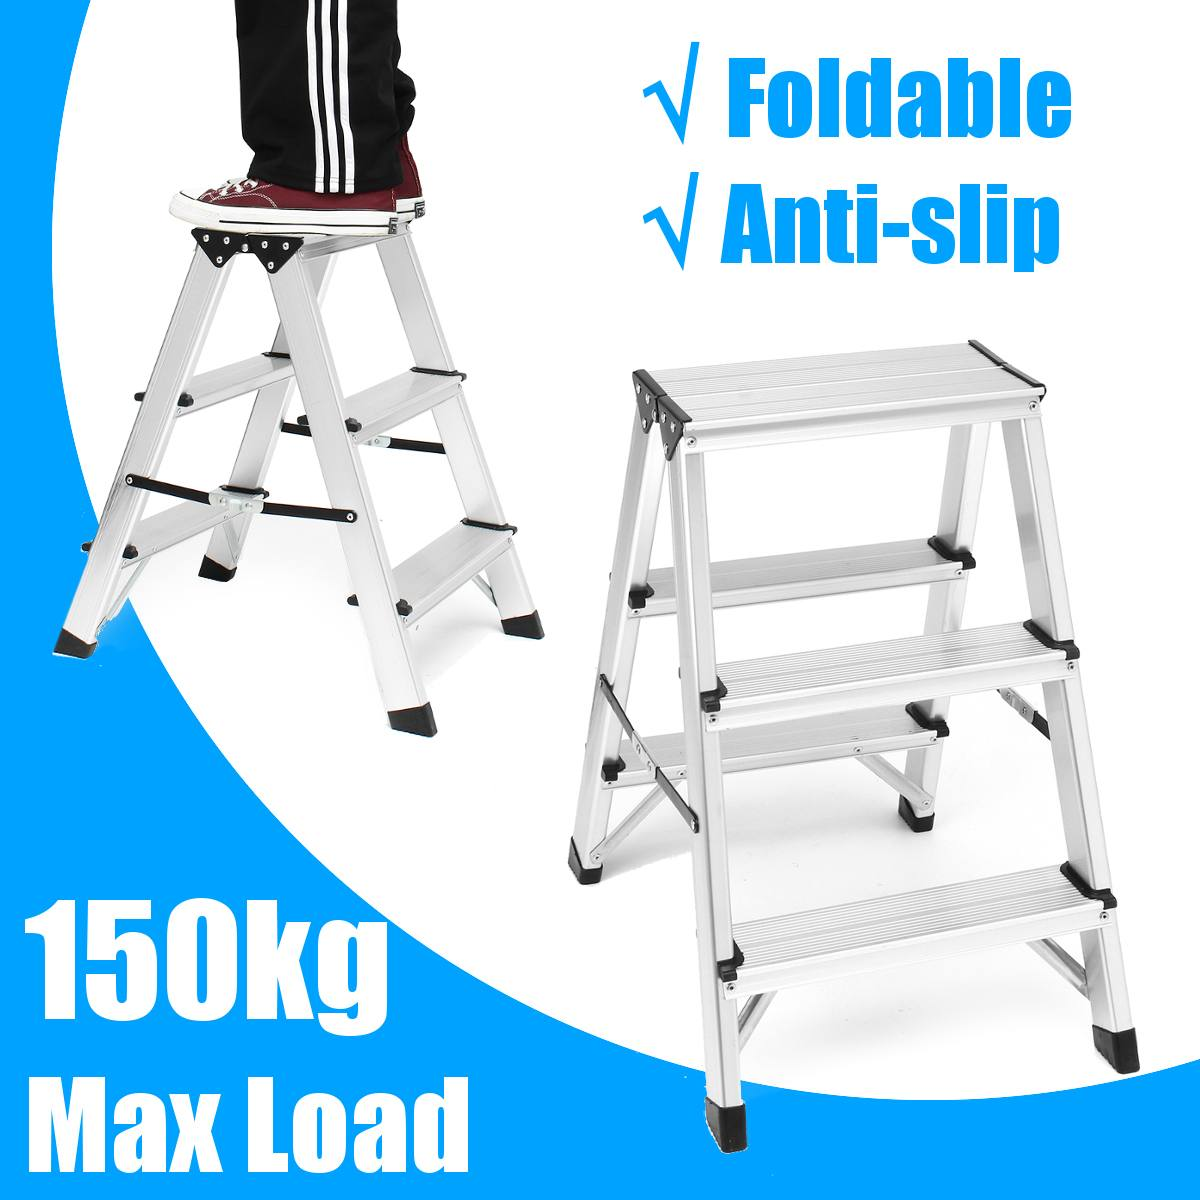 Industrial Duty Folding Ladder Anti Slip Safety 3 tep Ladder Big Step Stools Semi-insulating Construction Tool Double Sided